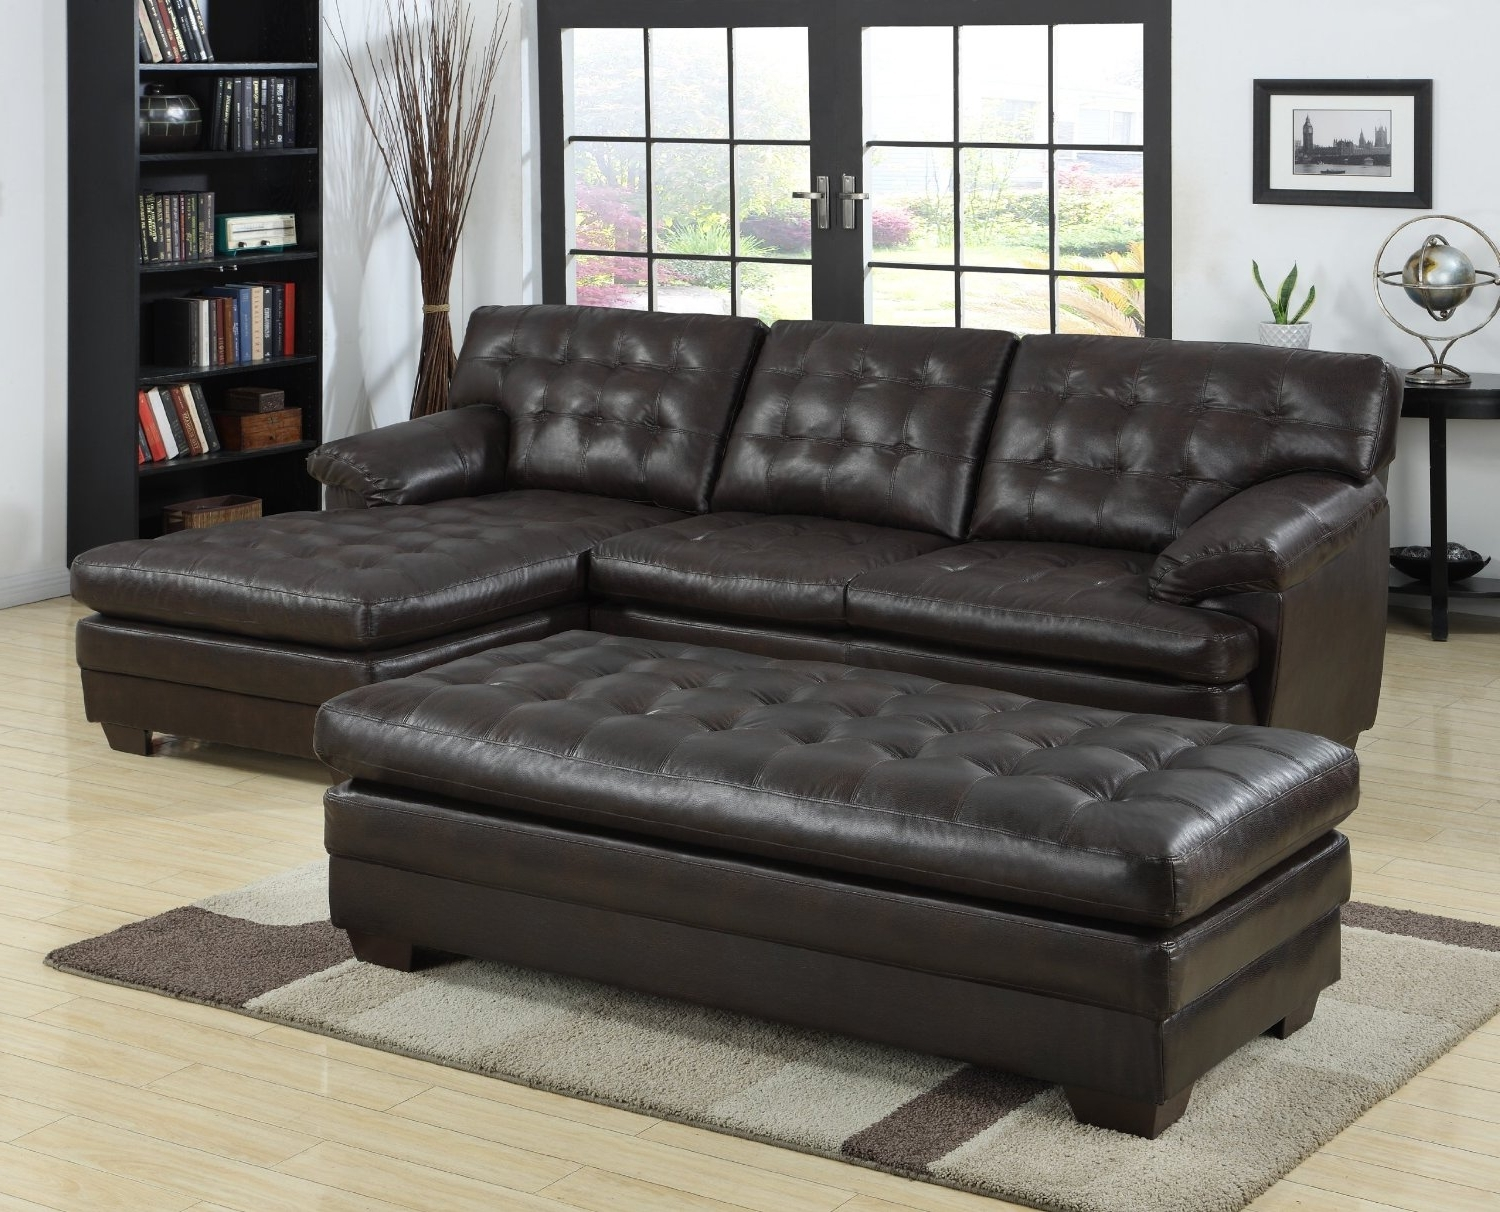 Leather Sectionals With Chaise And Ottoman Within Current Black Tufted Leather Sectional Sofa With Chaise And Bench Seat (View 8 of 15)